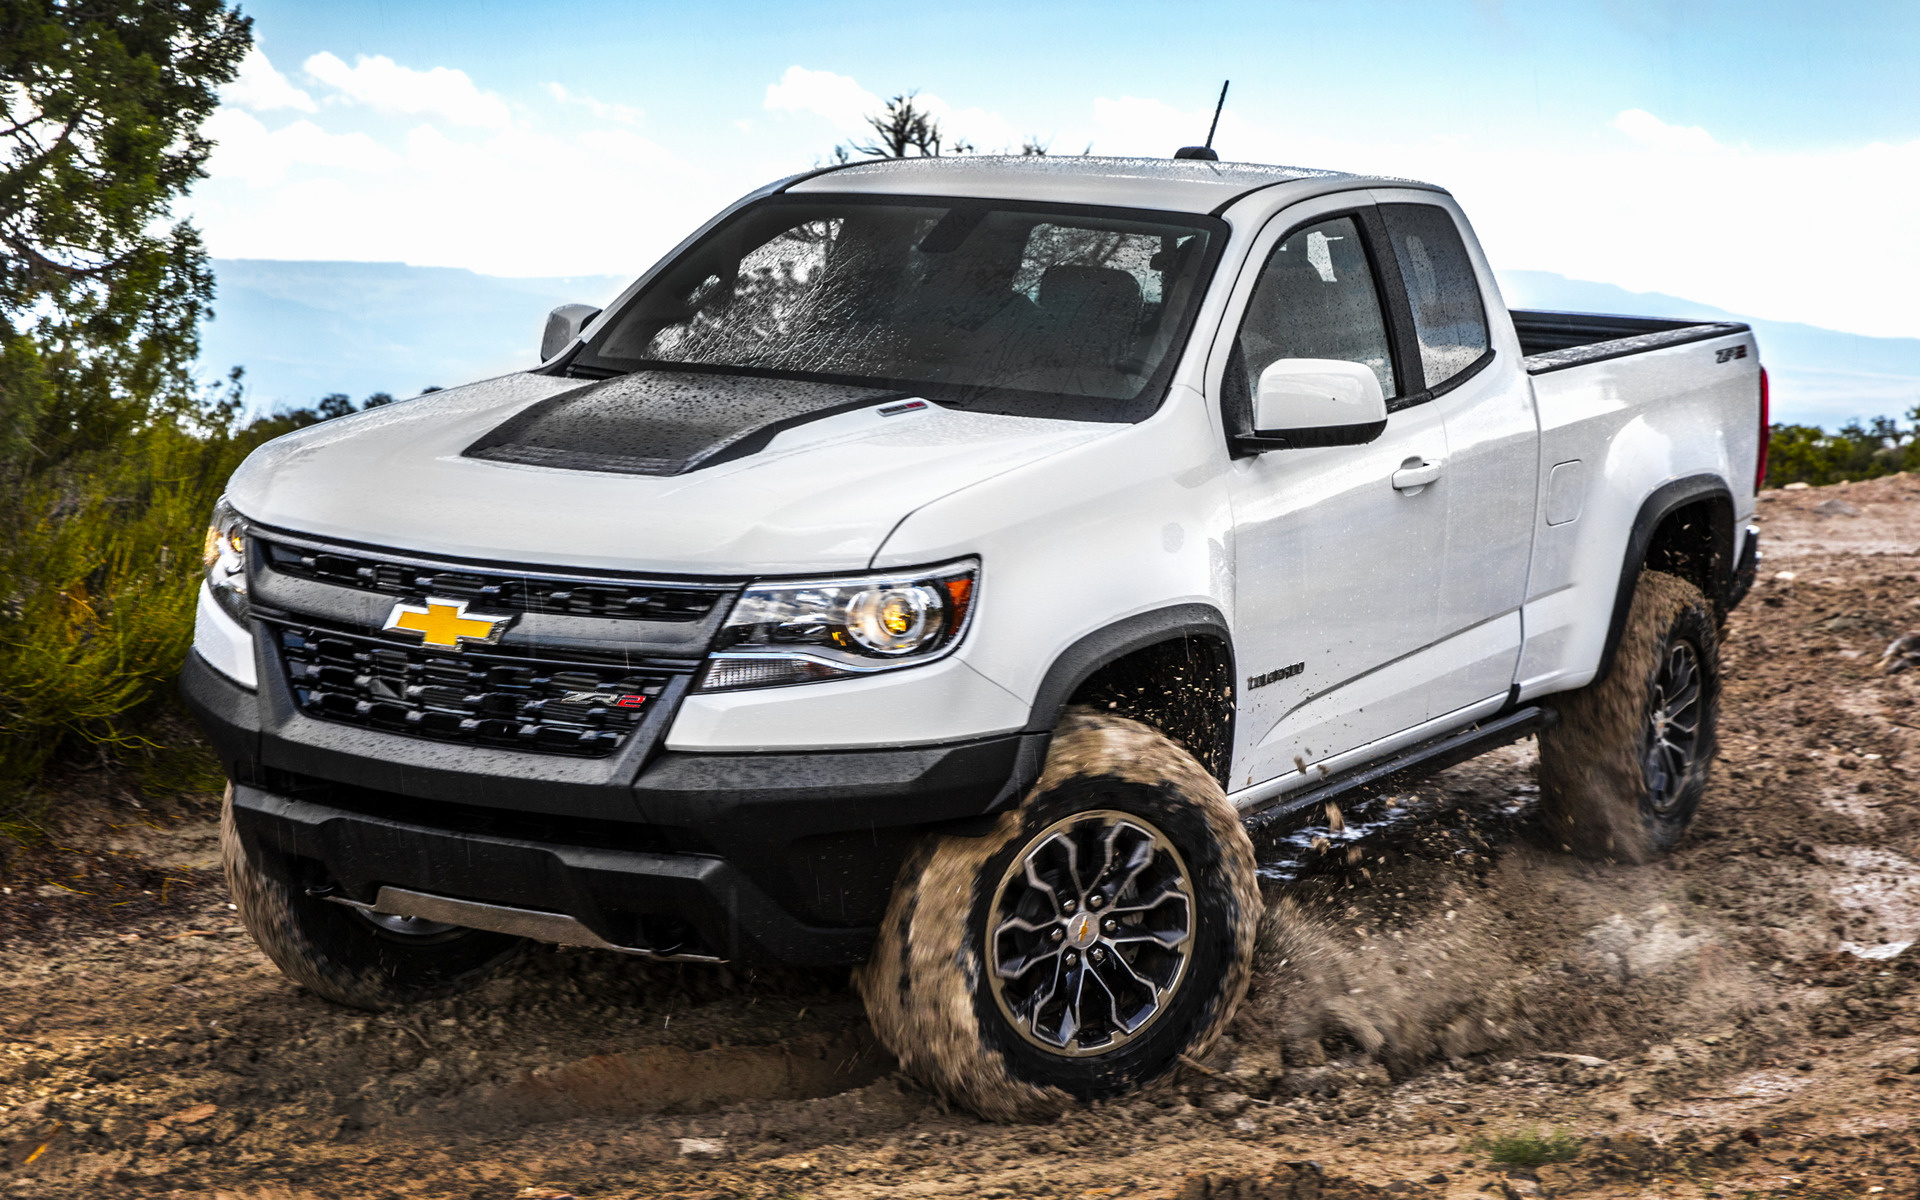 chevrolet colorado zr2 extended cab 2017 wallpapers and hd images car pixel. Black Bedroom Furniture Sets. Home Design Ideas